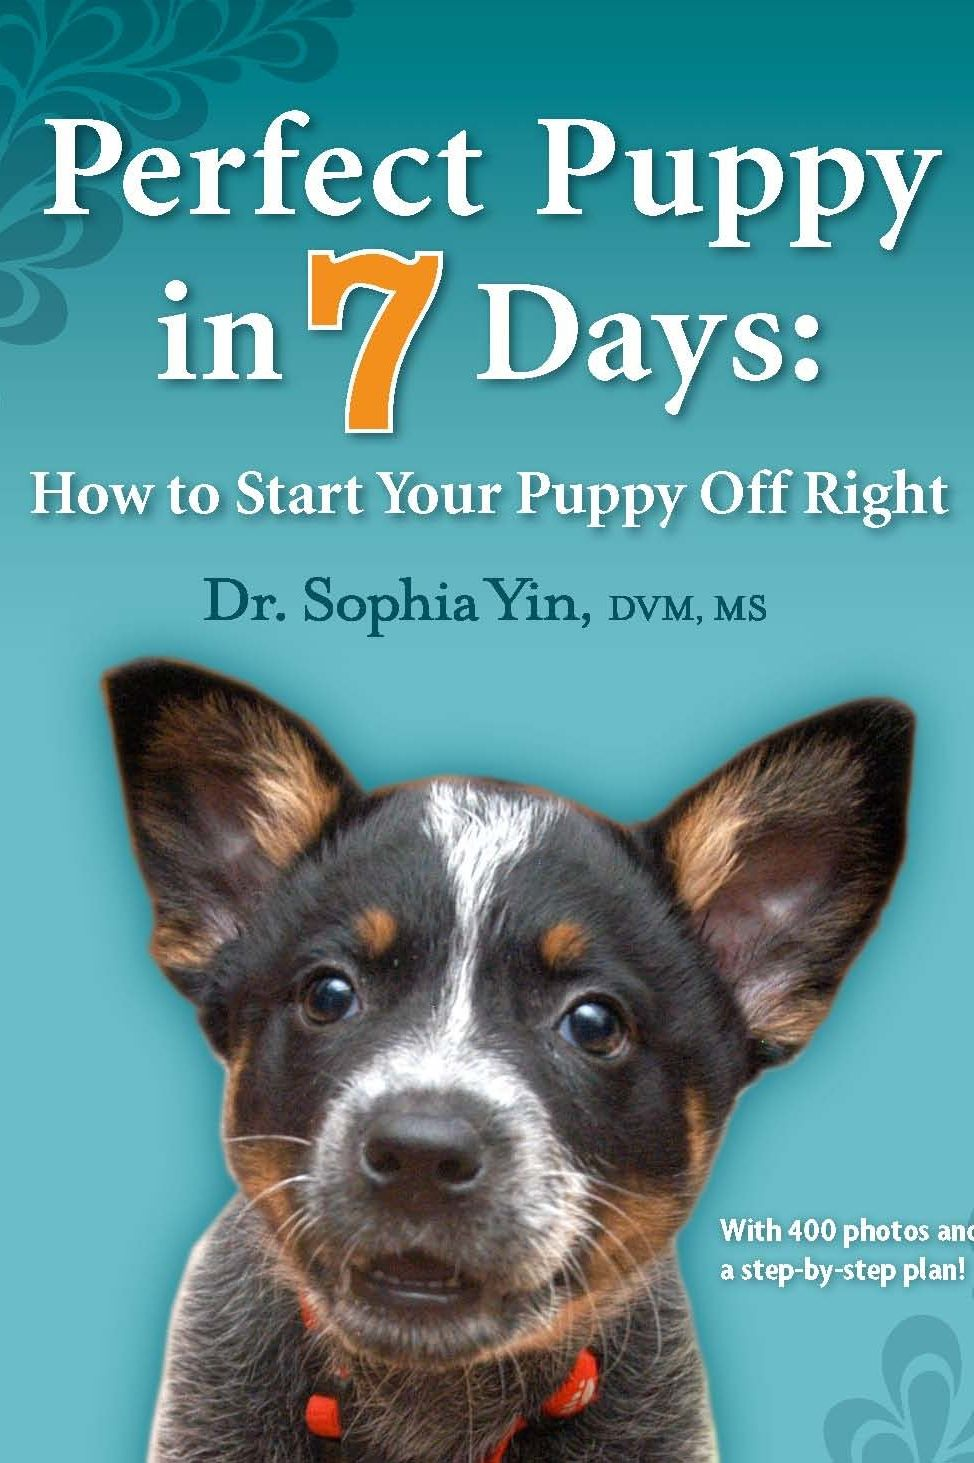 <em>Perfect Puppy in 7 Days: How to Start Your Puppy Off Right</em>, by Dr. Sophia Yin